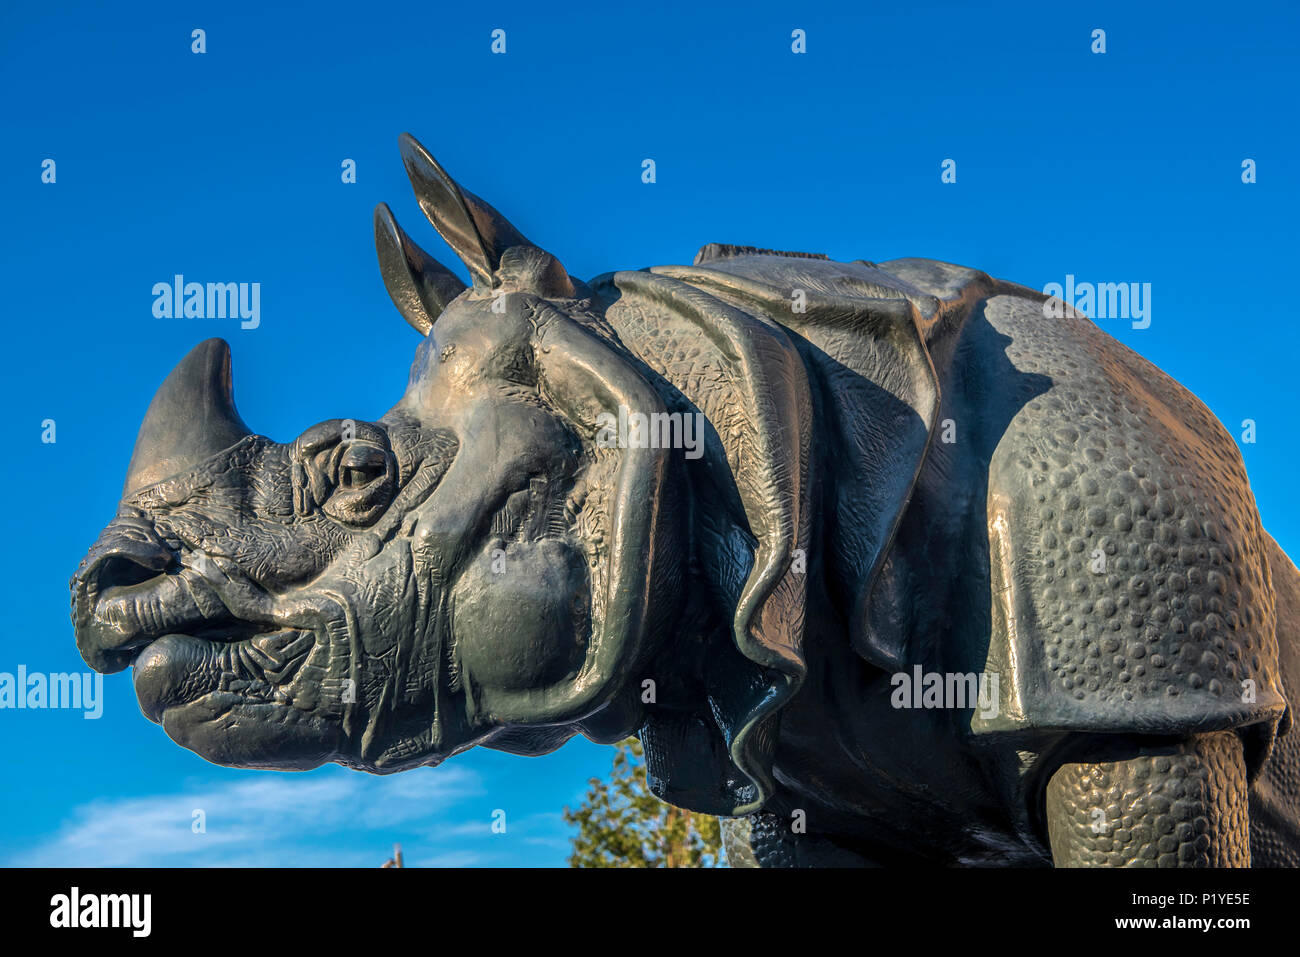 France, Ile de France, Paris, 7th district, sculpted rhinoceros by Alfred Jacquemart in front of the Musee d'Orsay - Stock Image